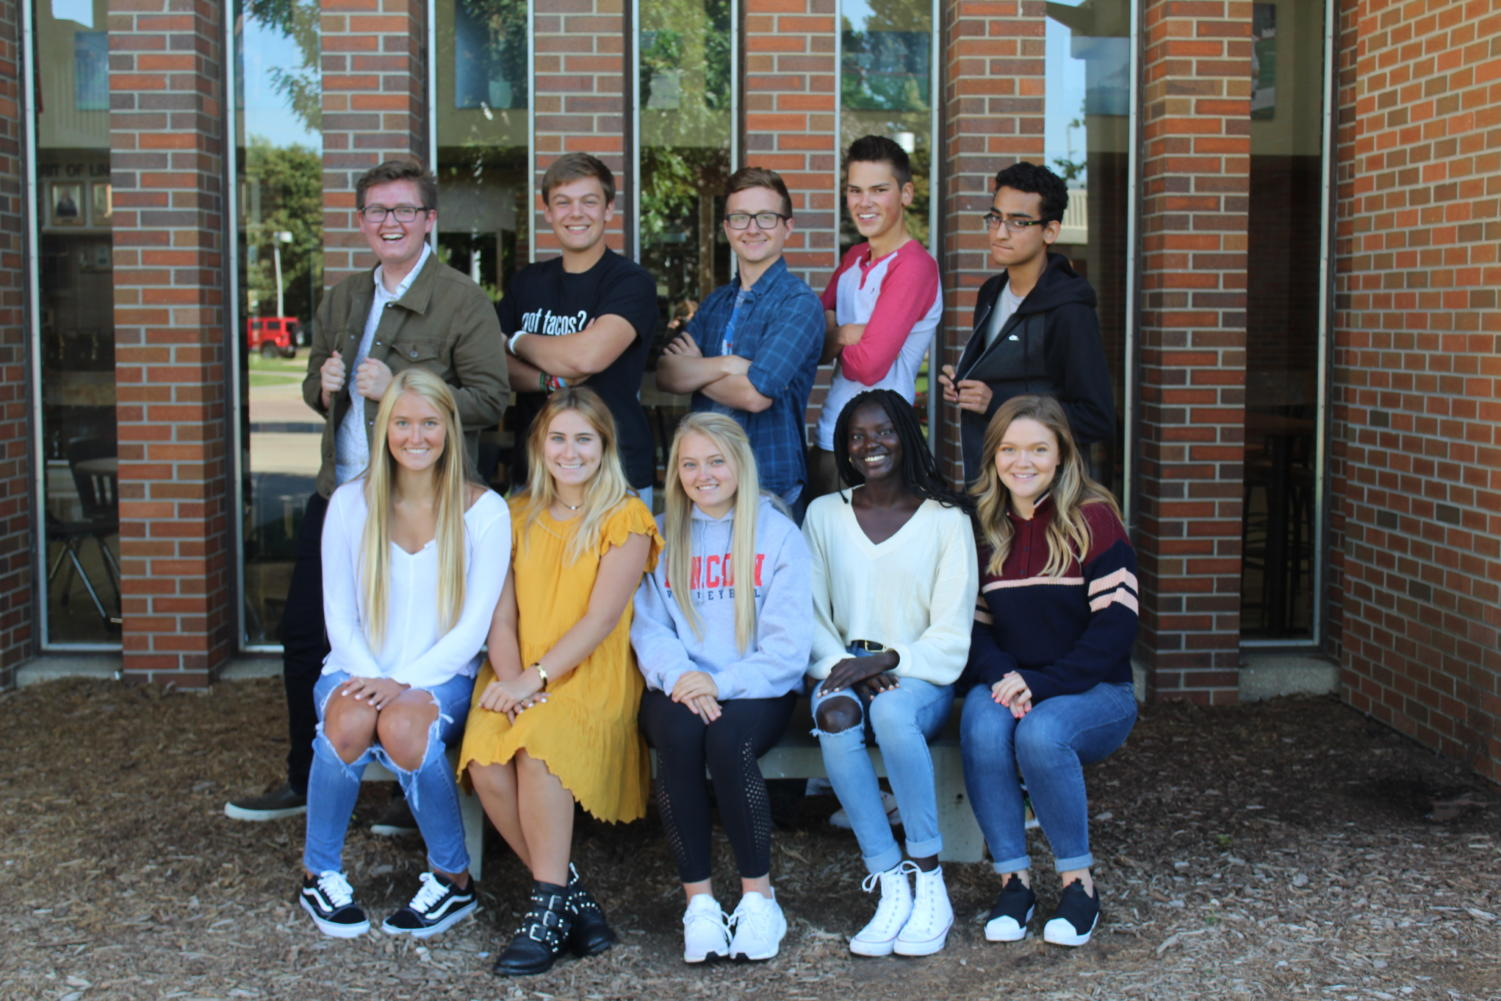 Royalty candidates for LHS include: Back left: Gage Gramlick, Caiden Capaldo, Ian Ward, Peter Christopherson and Akshay Choudhry Front left: Kate Fehrs, Chloe Crissman, Somer Luitjens, Josephine Dal and Lily Haitt